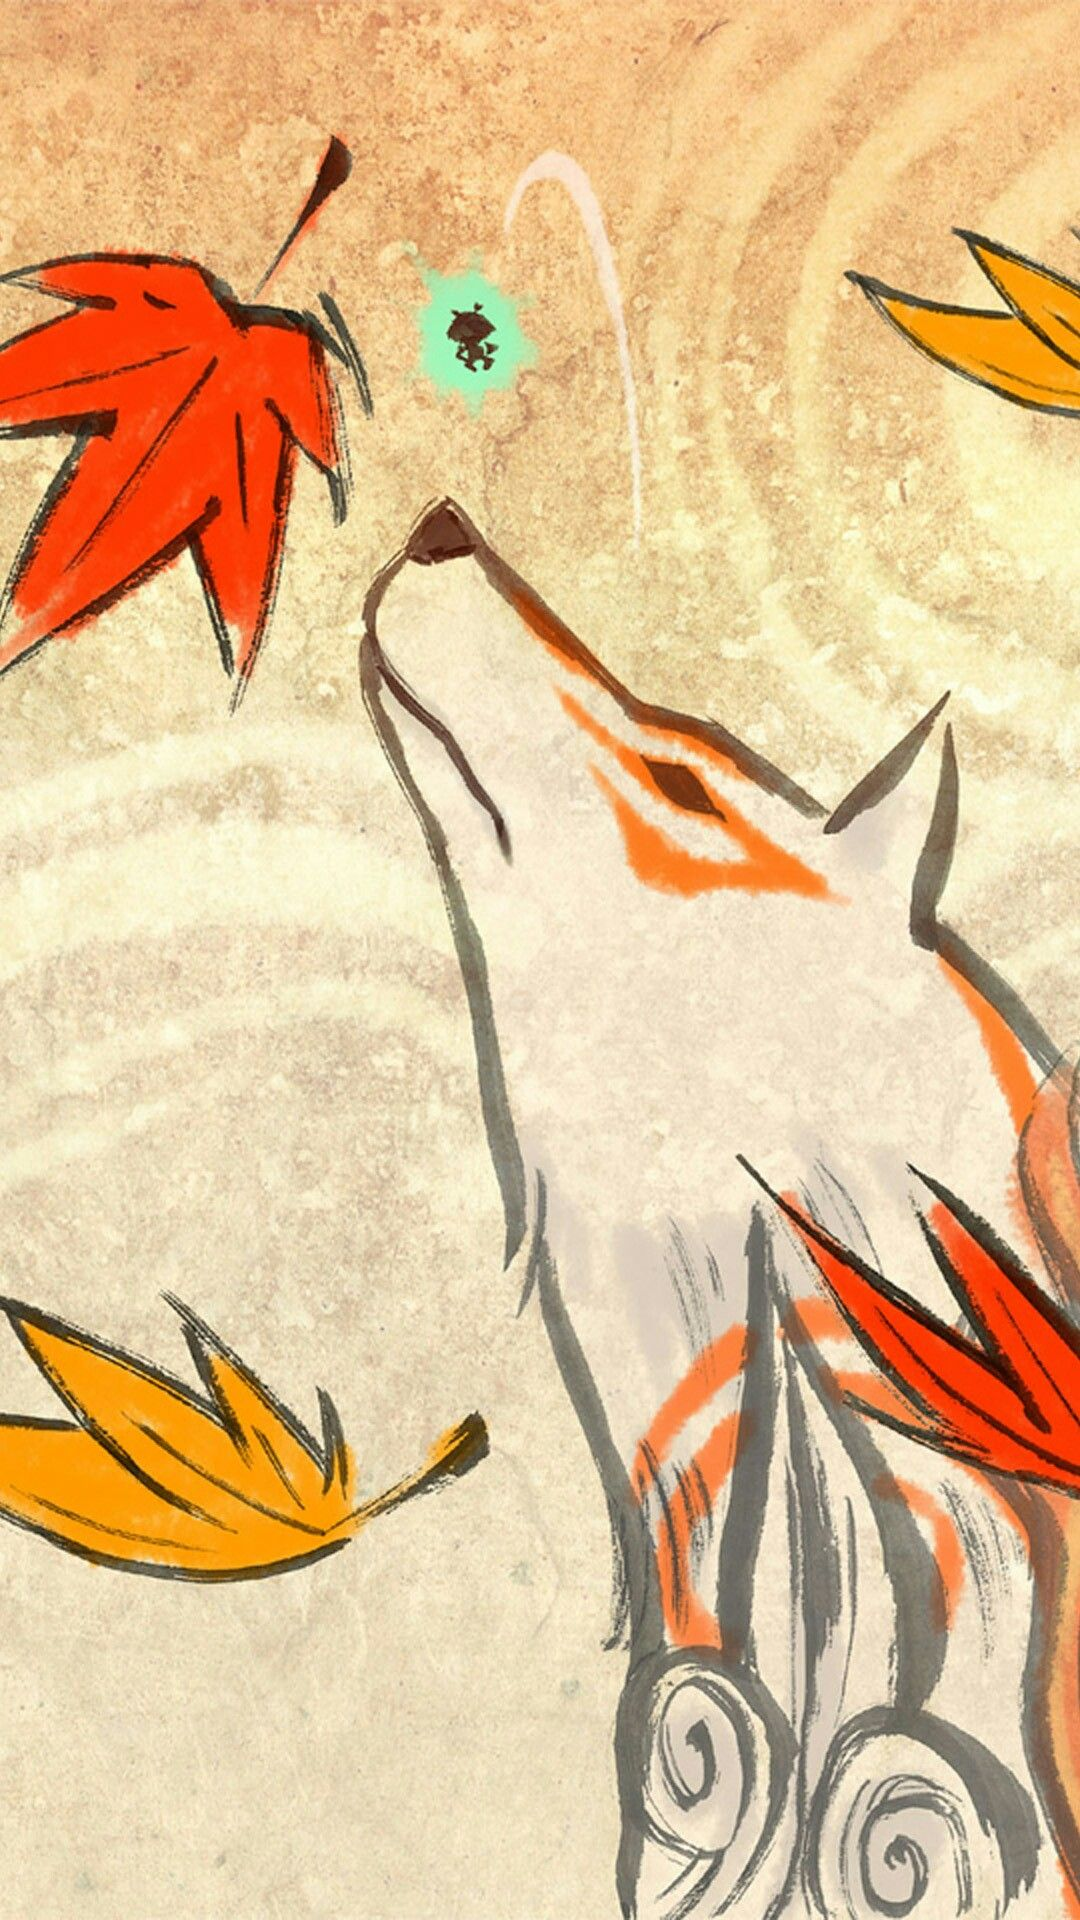 Amaterasu Okami Okami Amaterasu Video Game Art Game Art